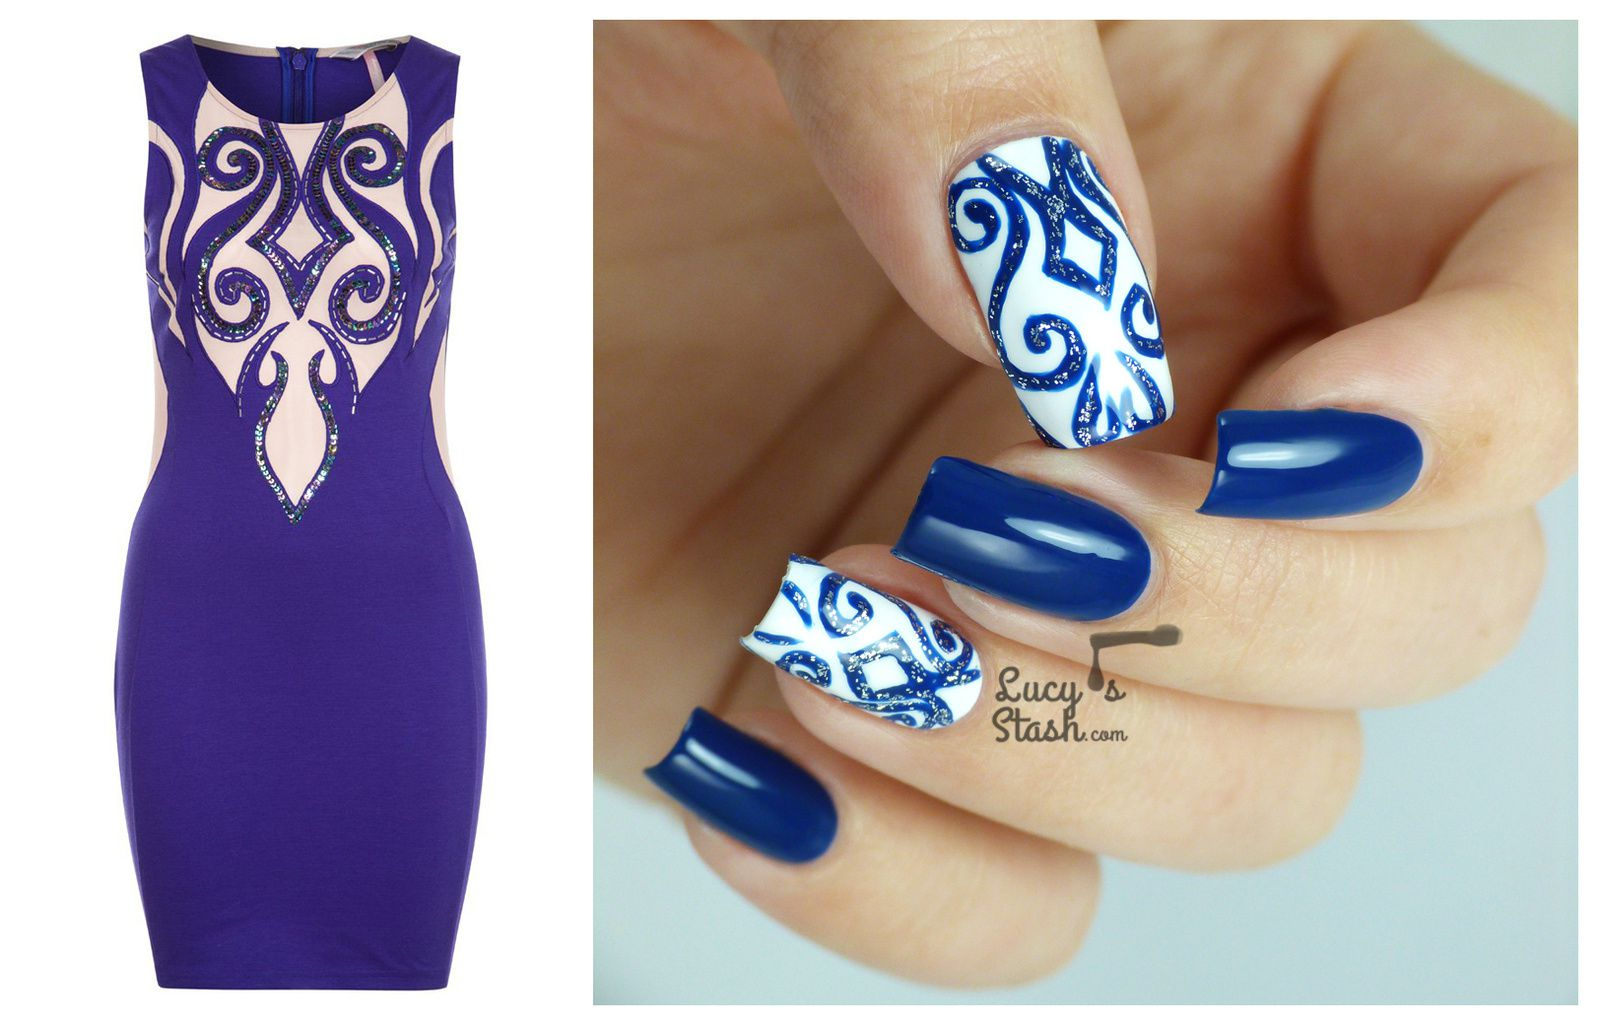 Nail Design For New Years Eve Party Match Your Nails Dress